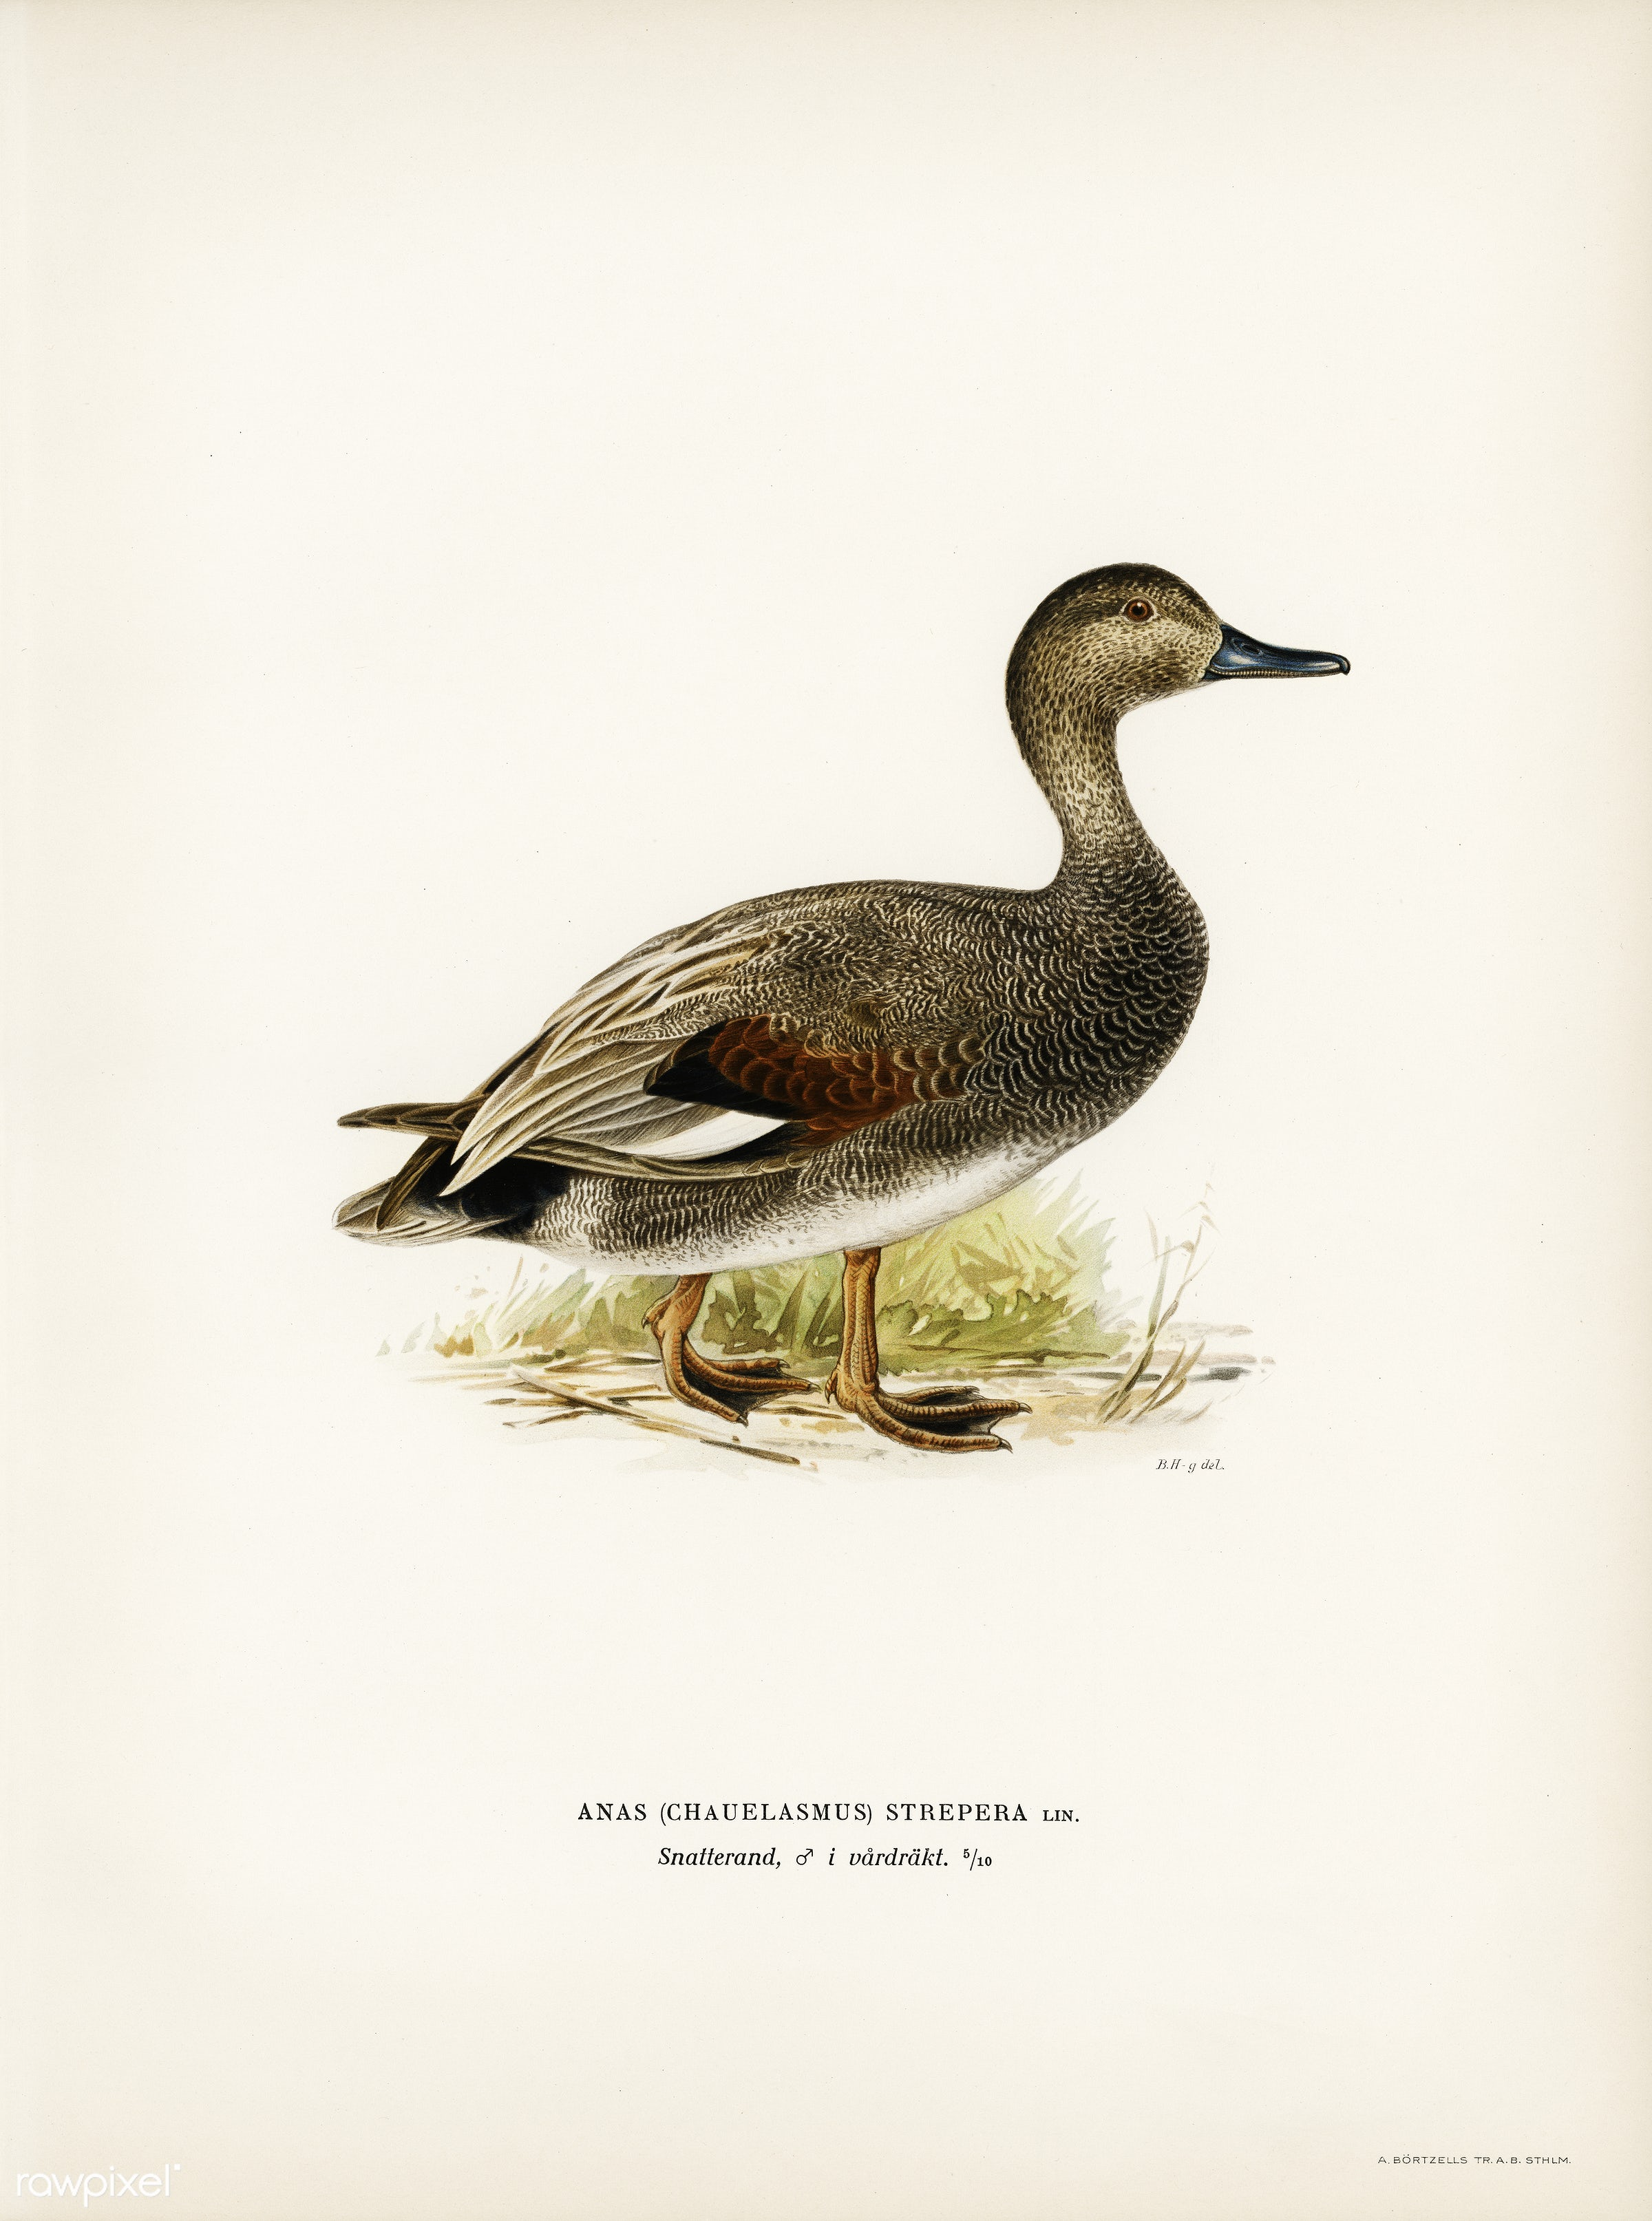 Gadwall (Anas (Chauelasmus) Strepera) illustrated by the von Wright brothers. Digitally enhanced from our own 1929 folio...